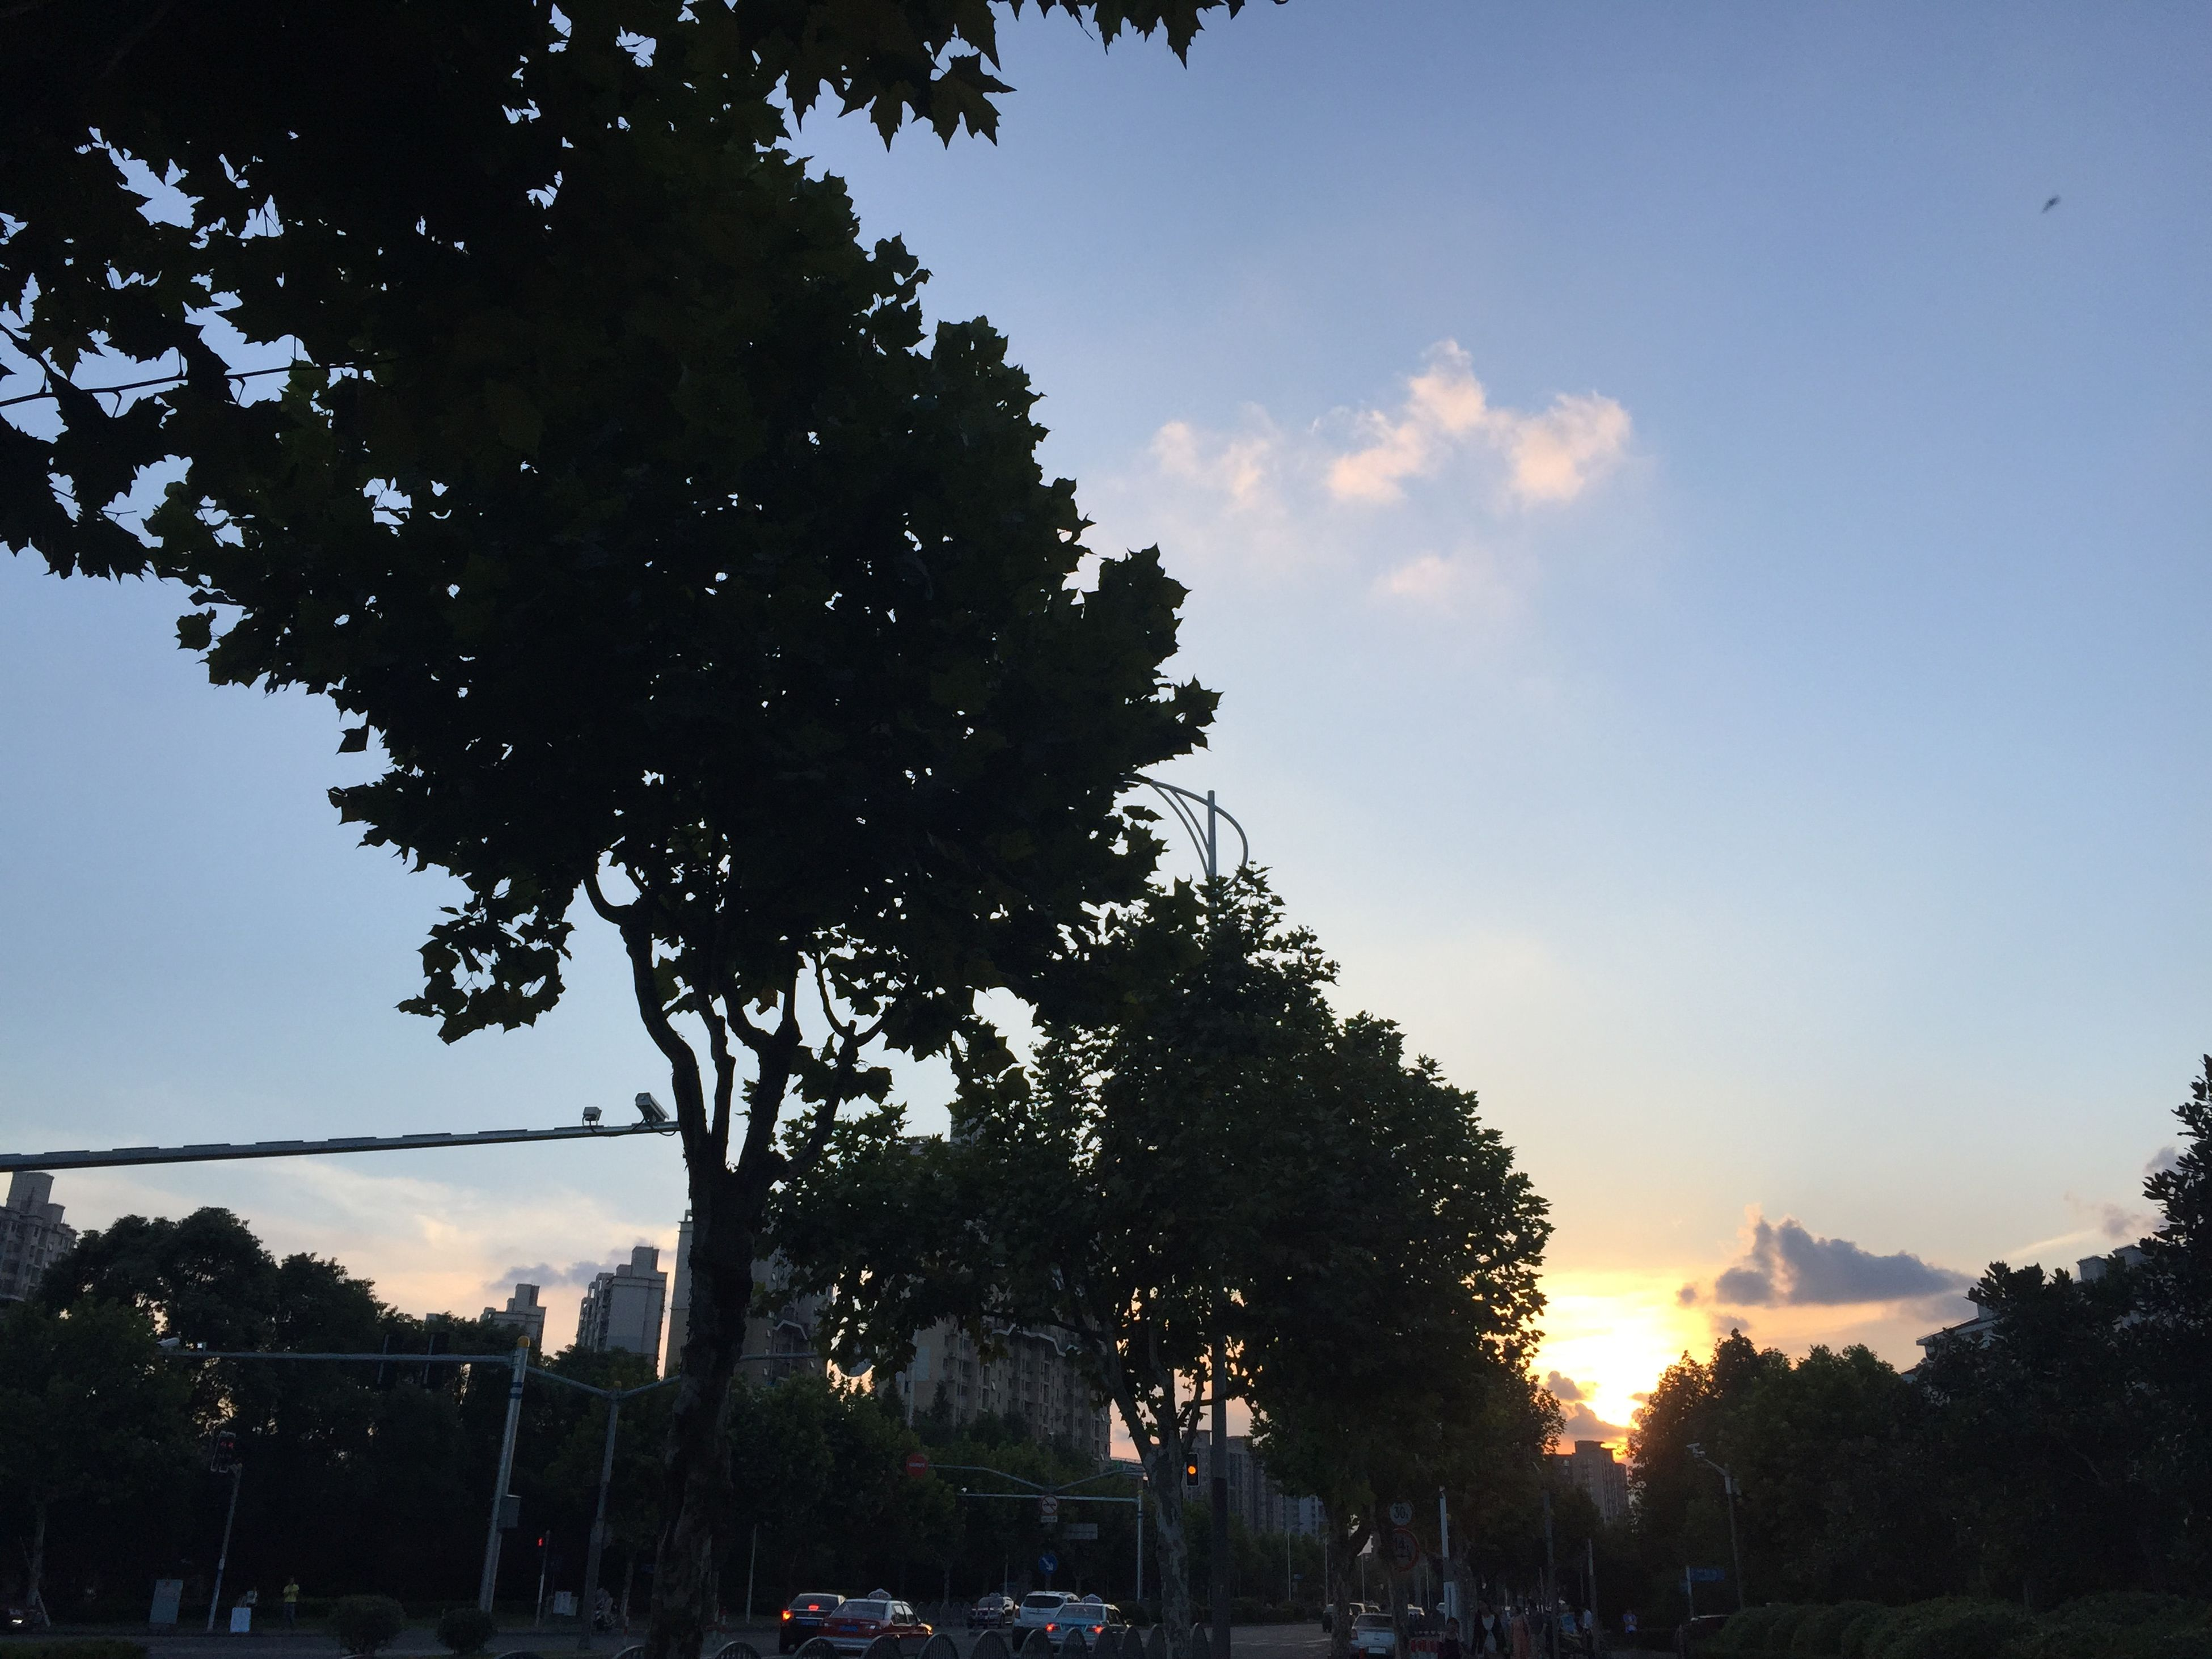 tree, sunset, sky, silhouette, low angle view, growth, nature, beauty in nature, tranquility, sunlight, scenics, branch, built structure, tranquil scene, outdoors, no people, cloud - sky, building exterior, architecture, street light